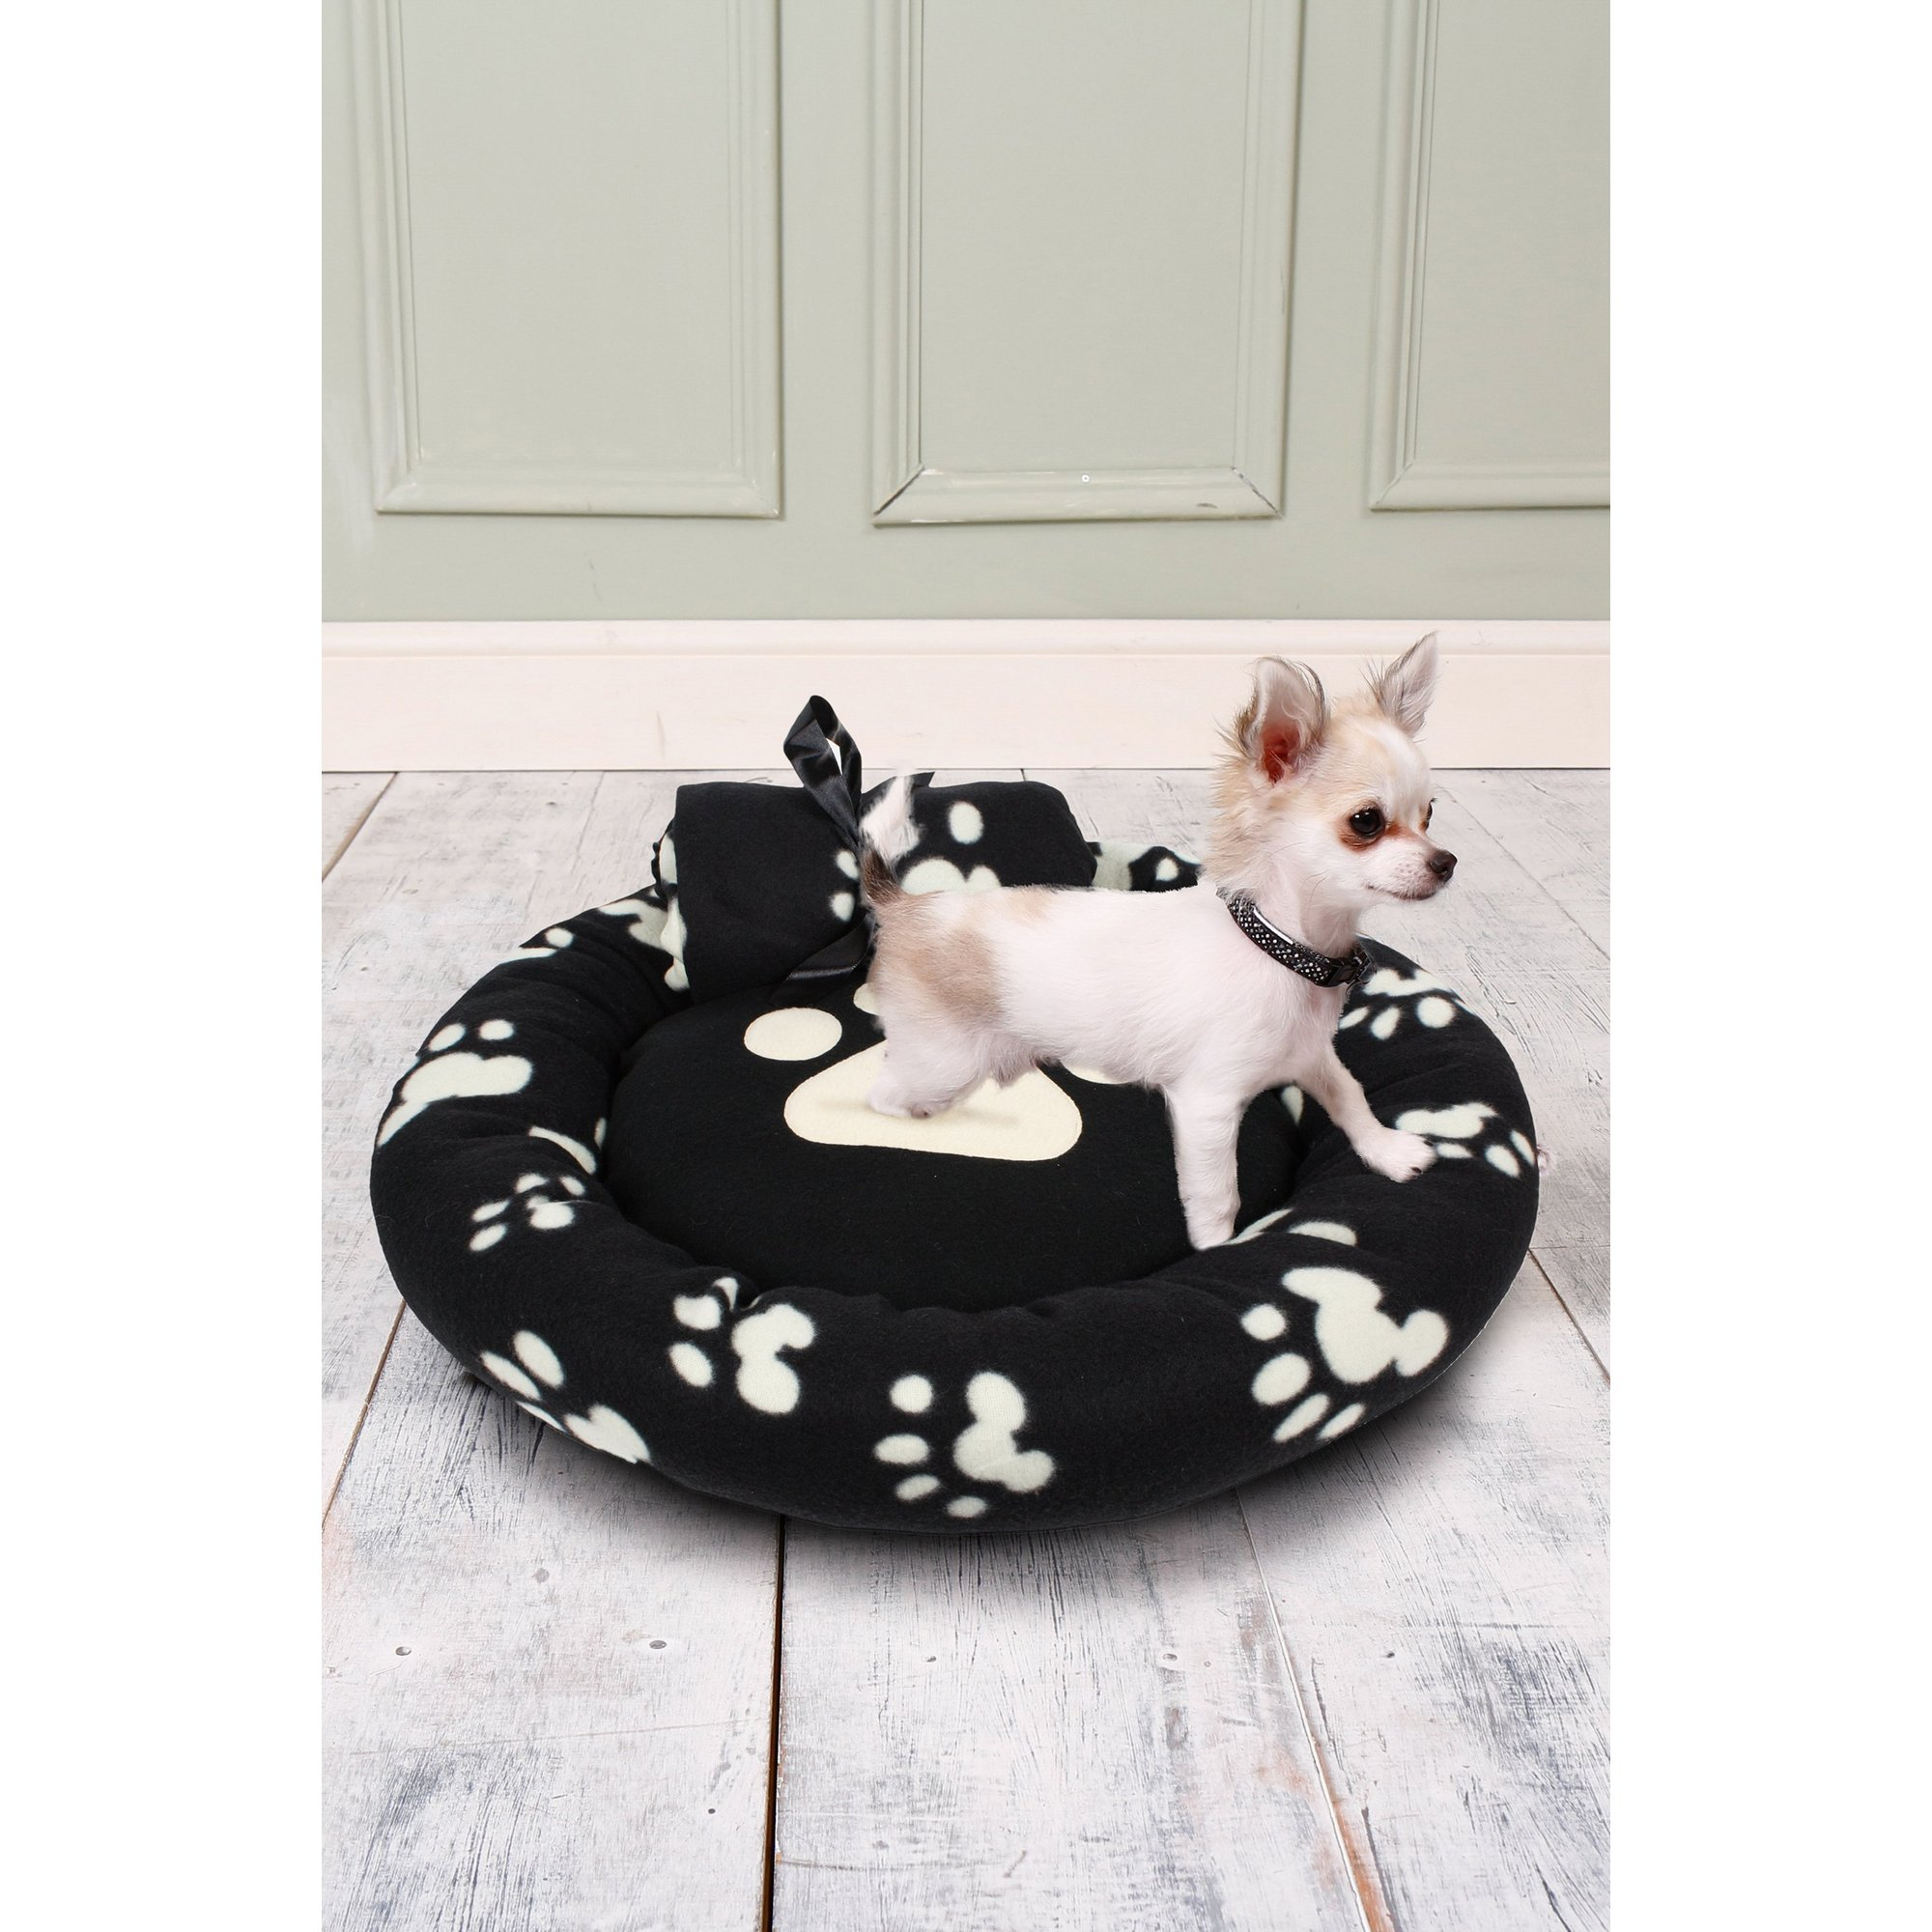 Image of Black Pawprint Fleece Pet Bed and Blanket Set